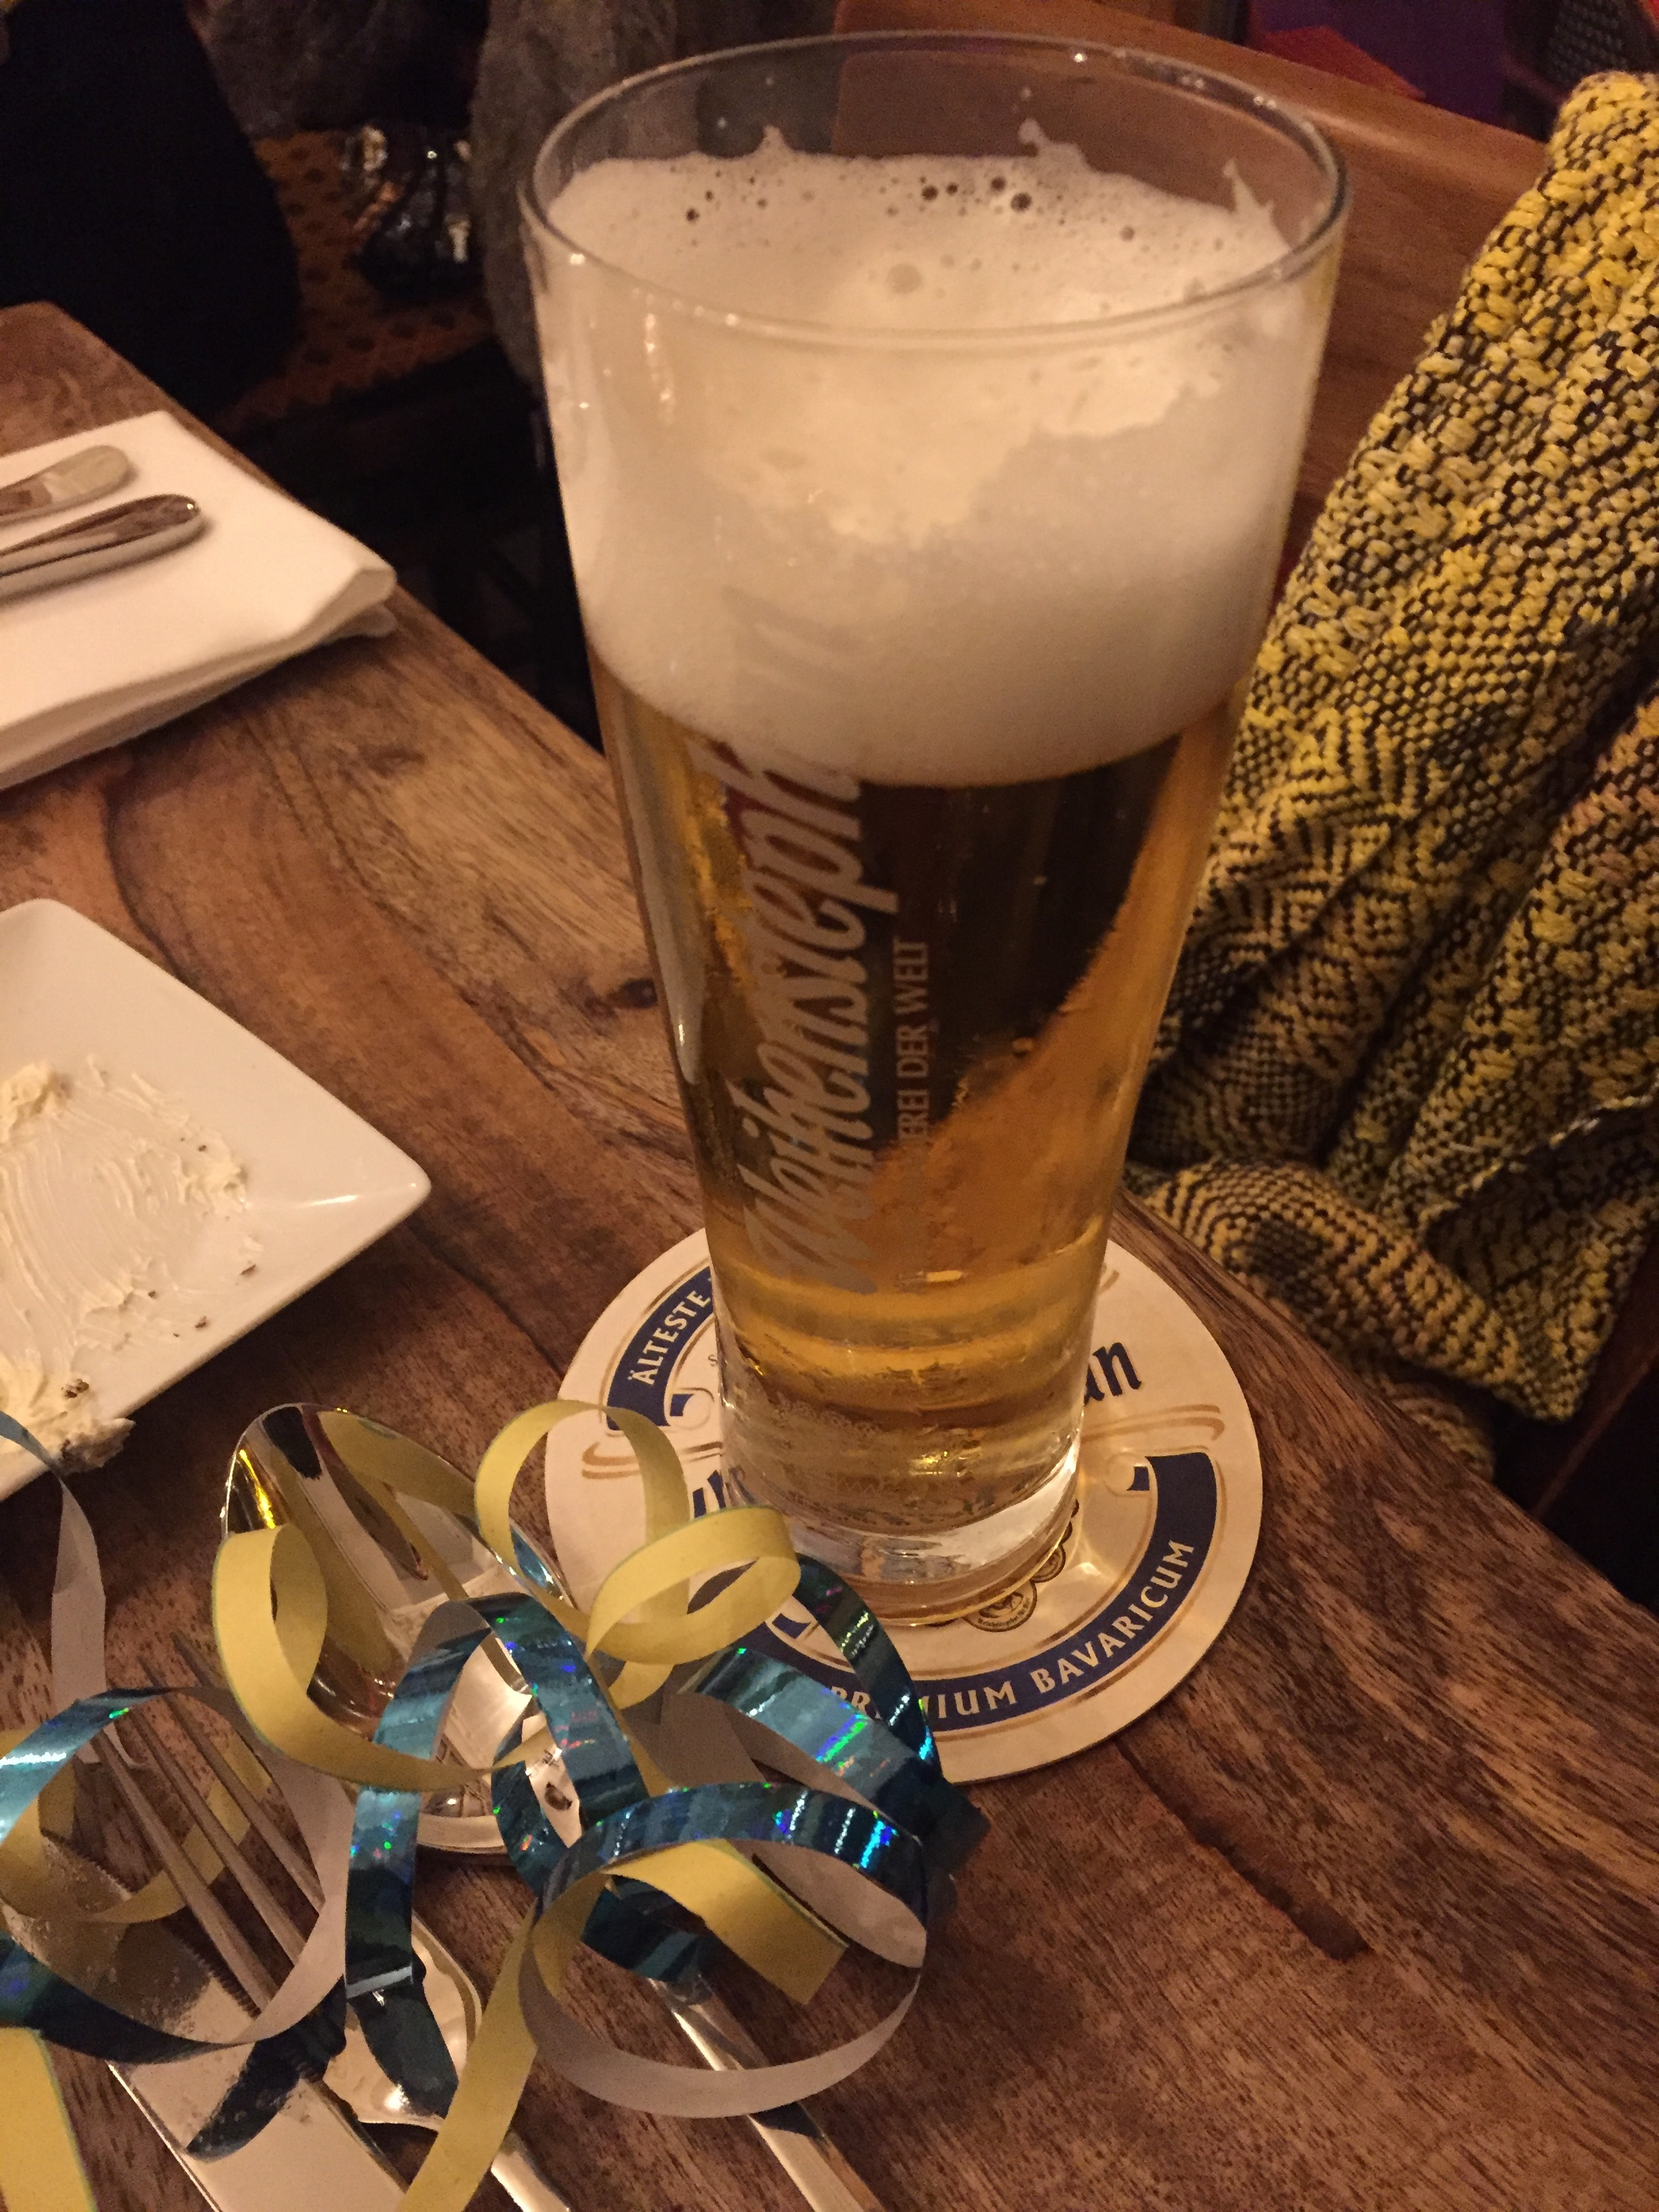 New Year's Weihenstephan at Brasserie Lumieres (Berlin)